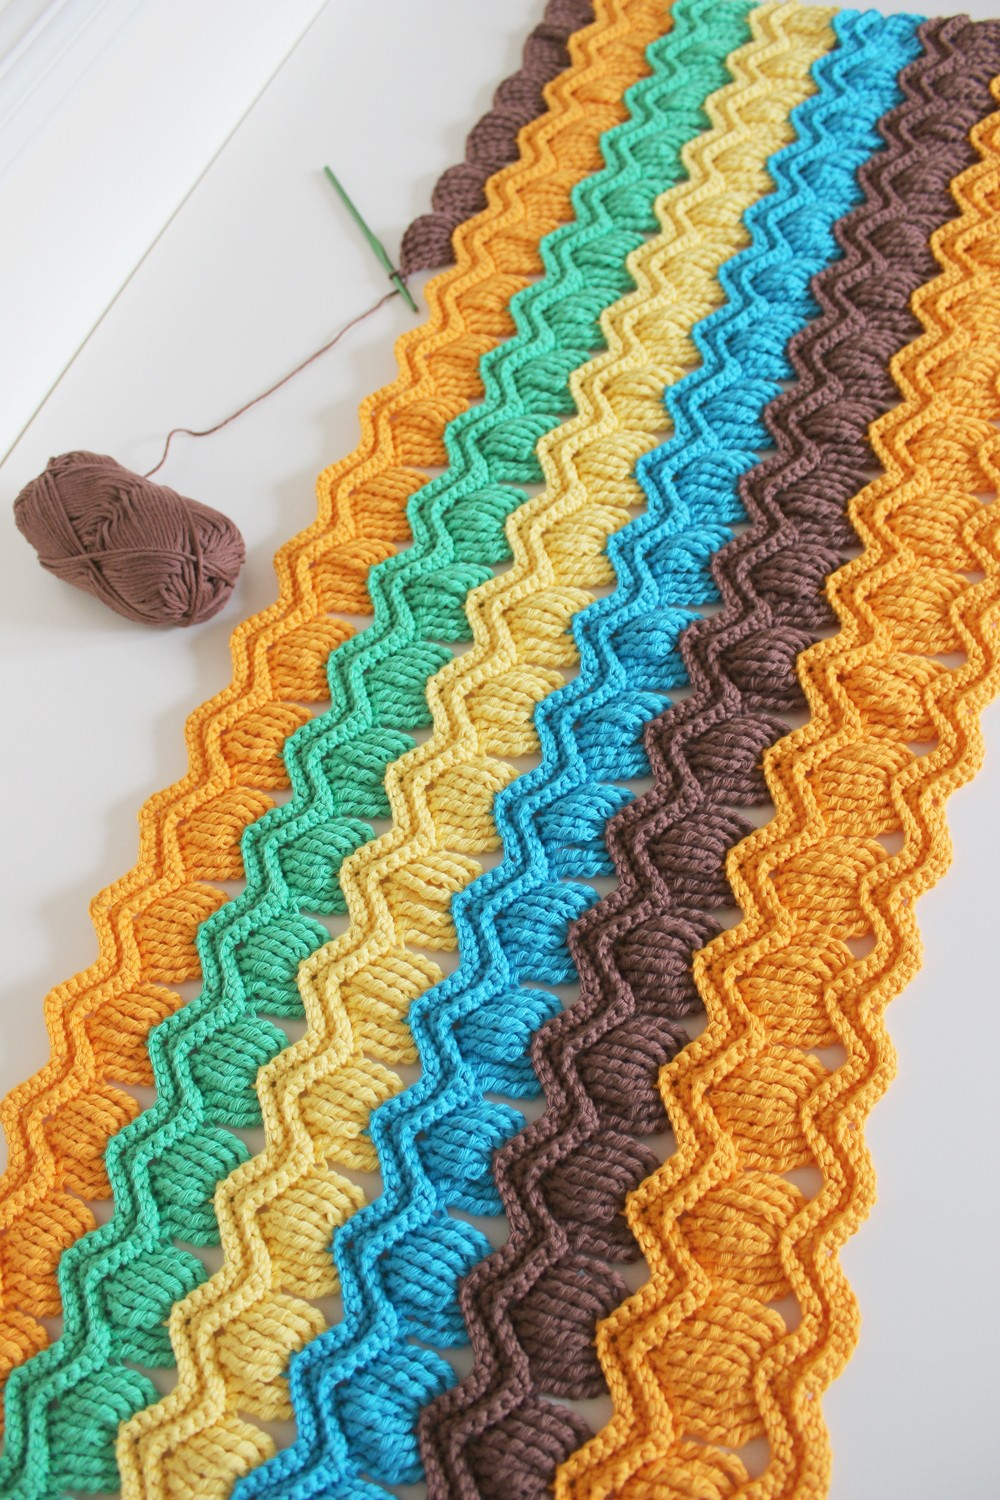 Crochet Websites : How To Crochet A Ripple Blanket Free pattern] crochet vintage fan ...